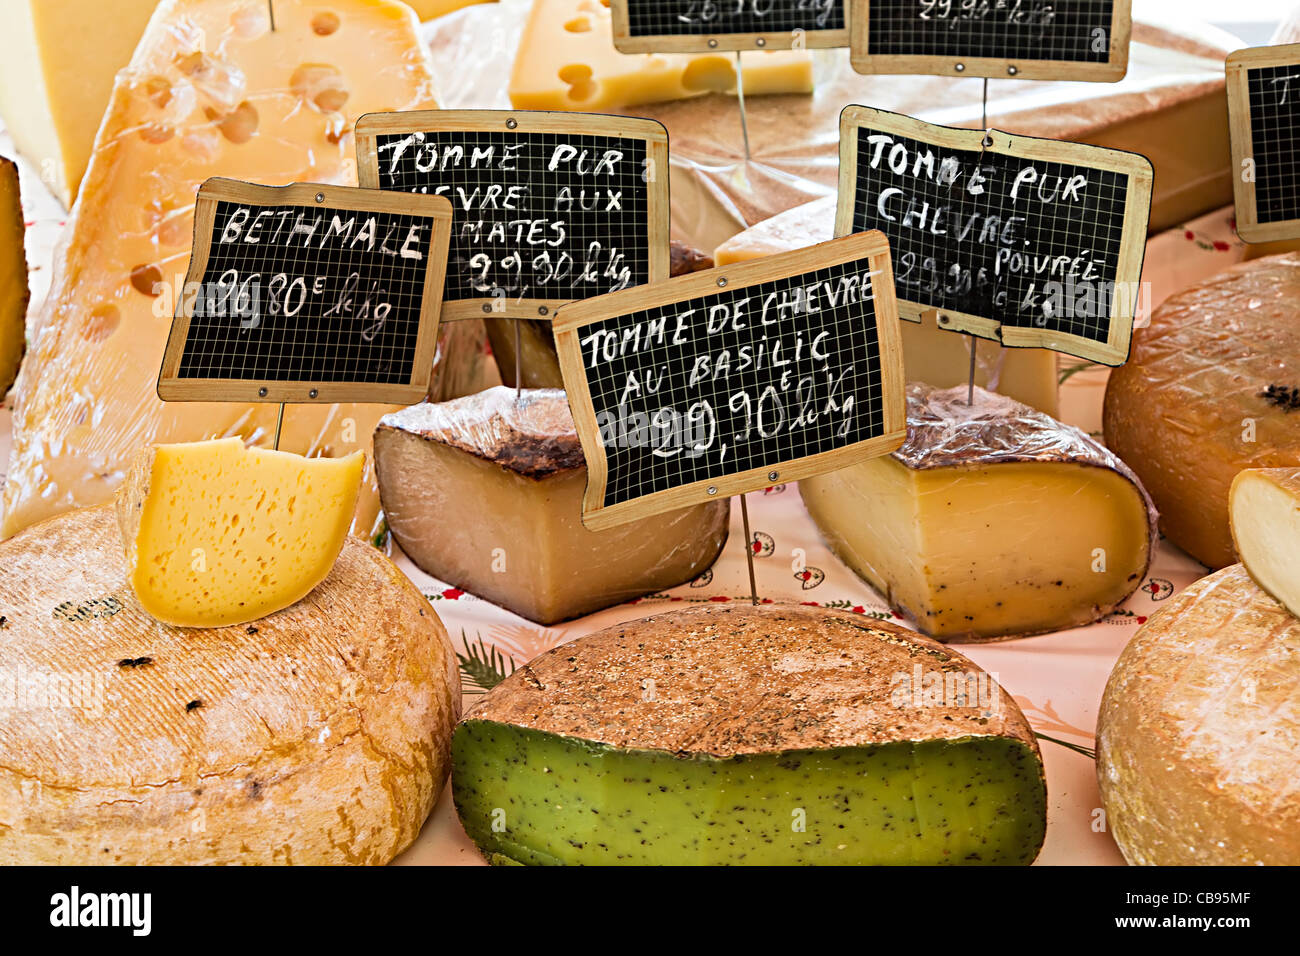 French cheeses including Tomme de Chevre on sale in market St Chinian France - Stock Image